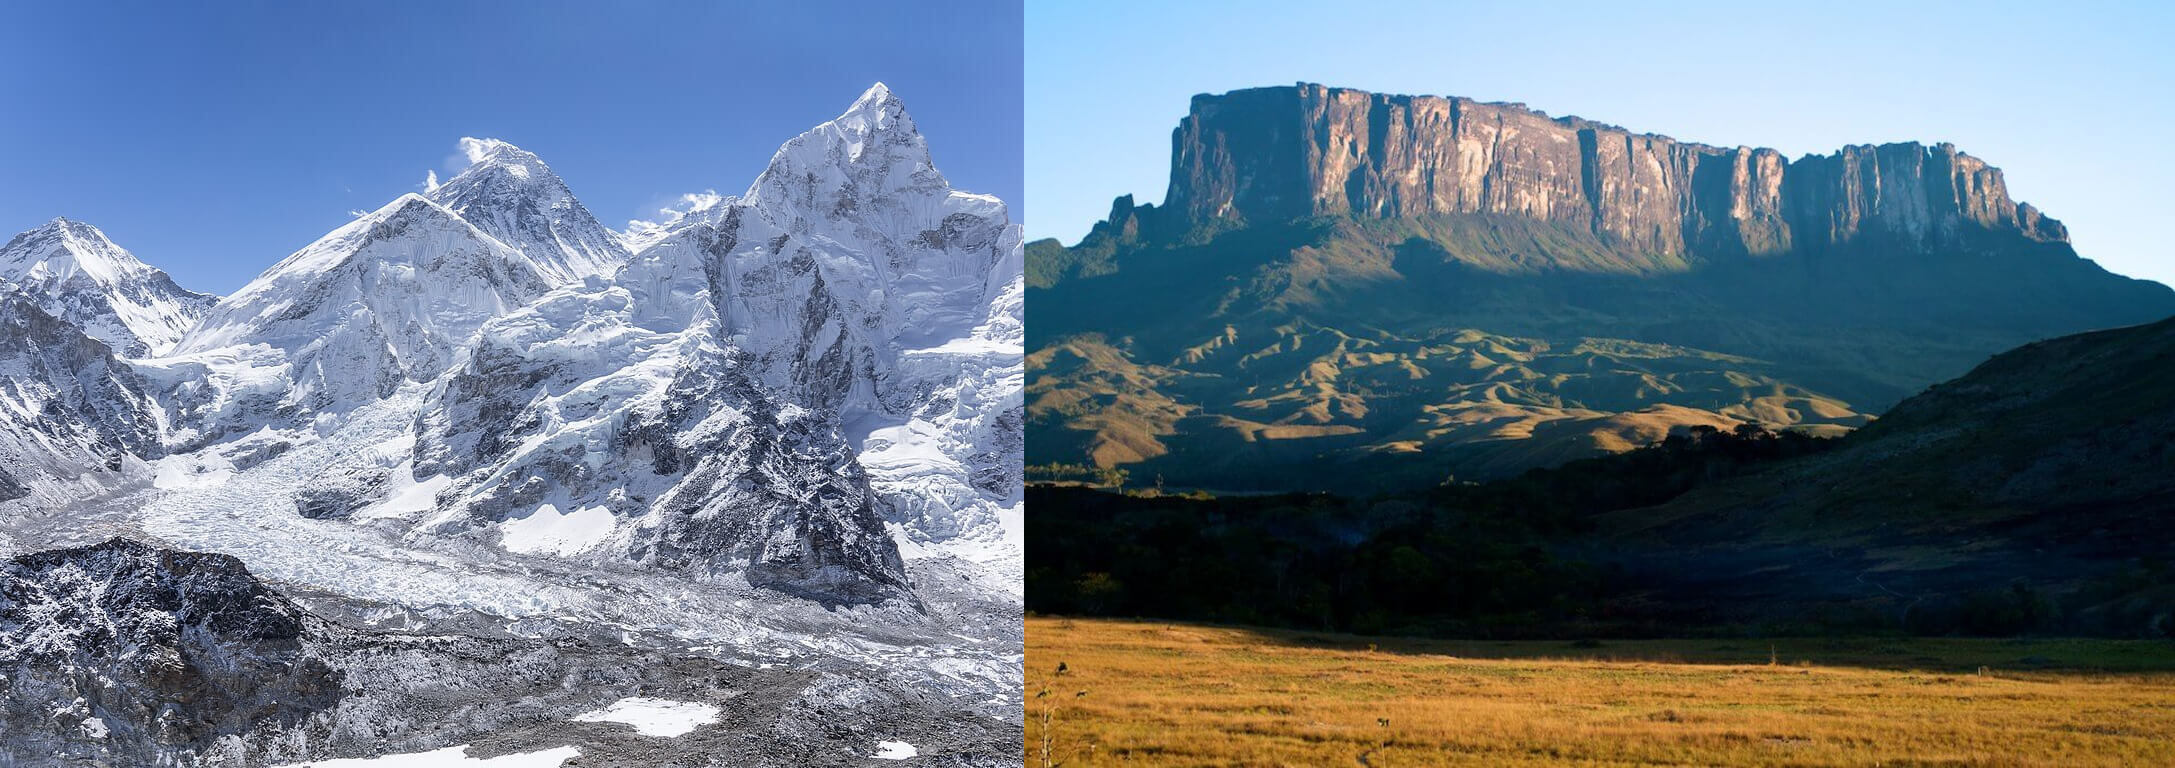 Difference Between Mountain and Plateau